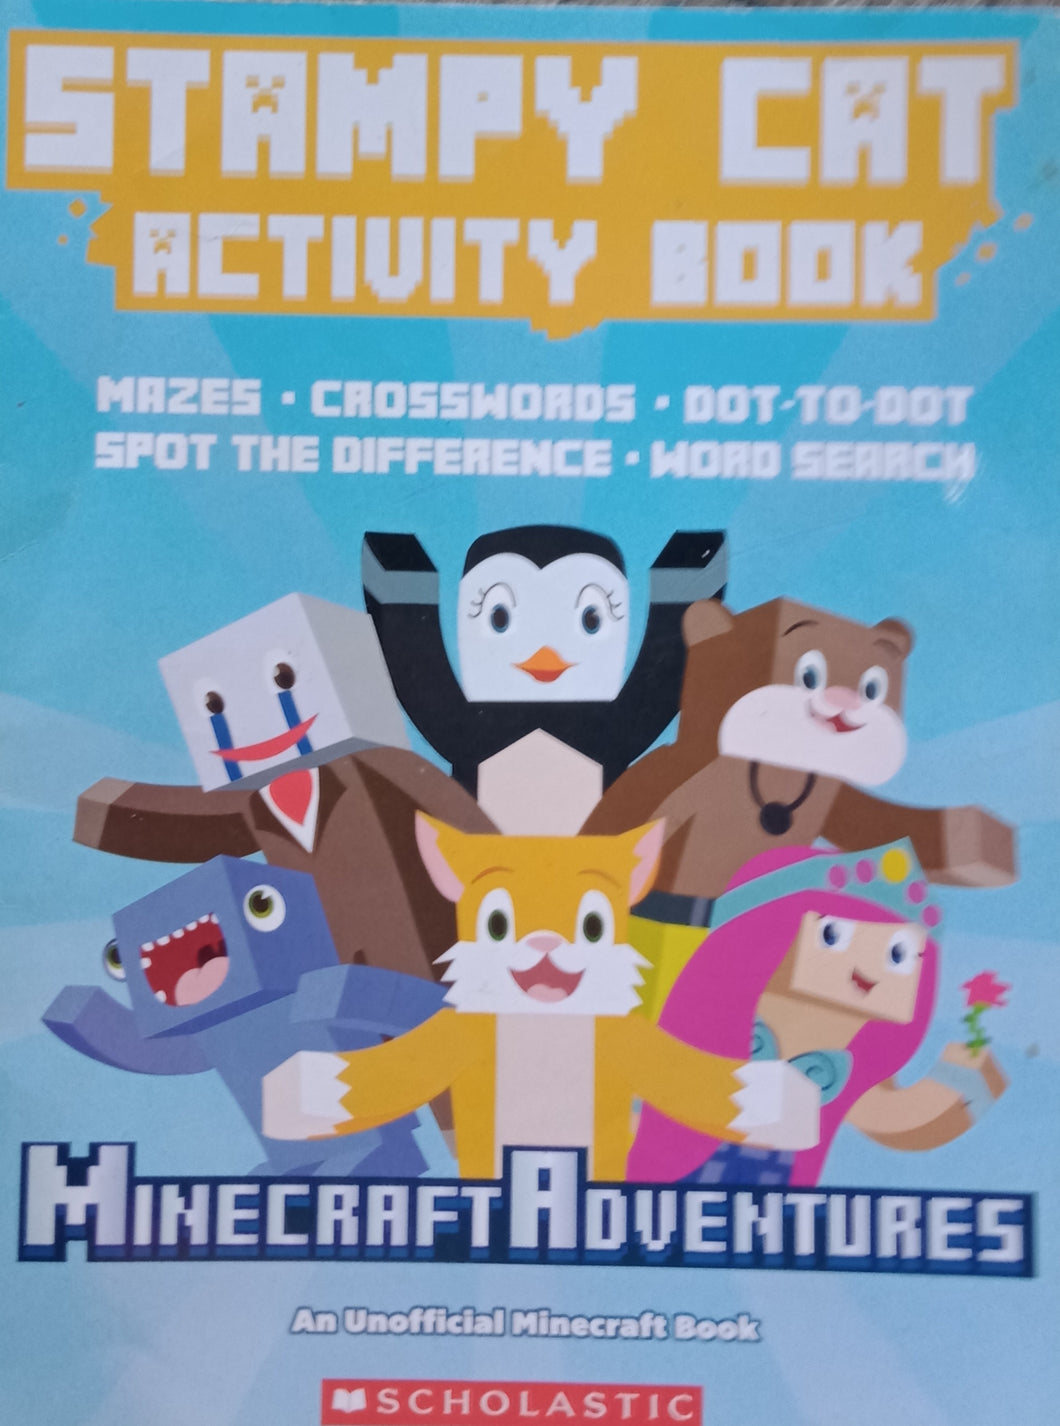 Stamy Cat Activity Book